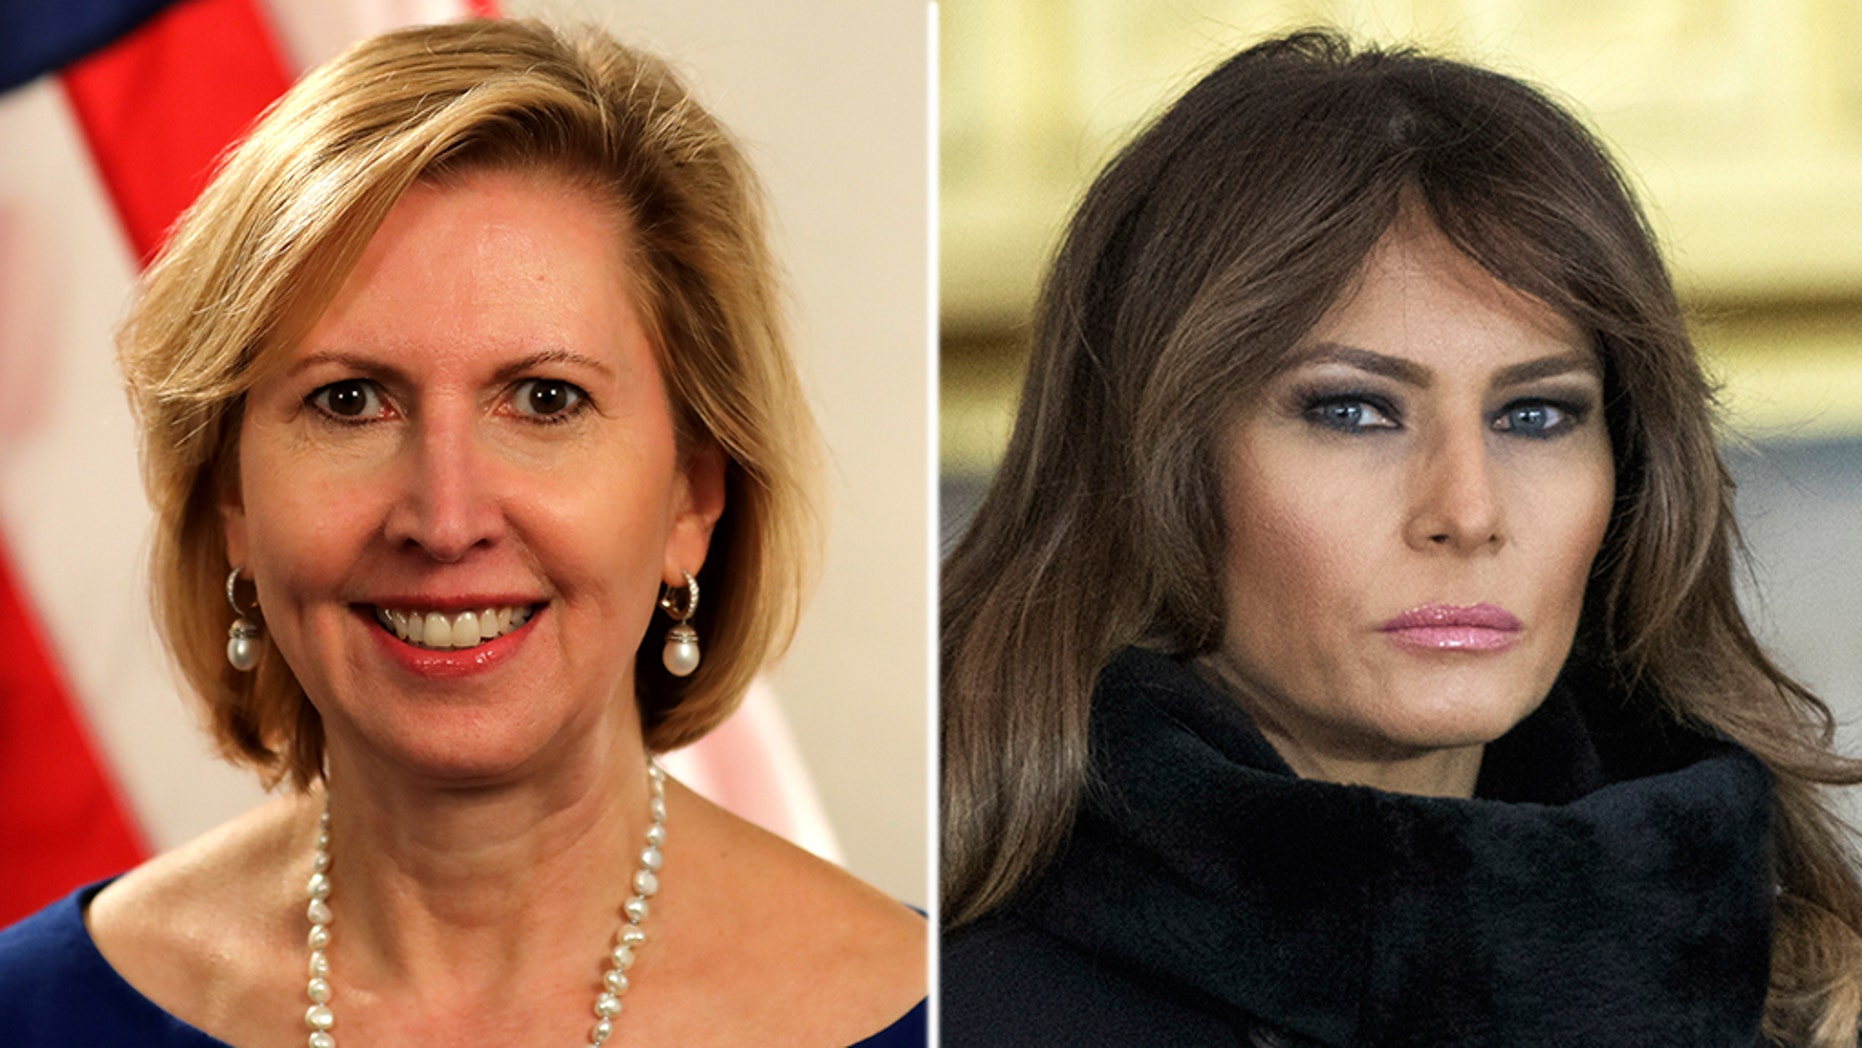 Who is Mira Ricardel and why did Melania Trump want her fired?